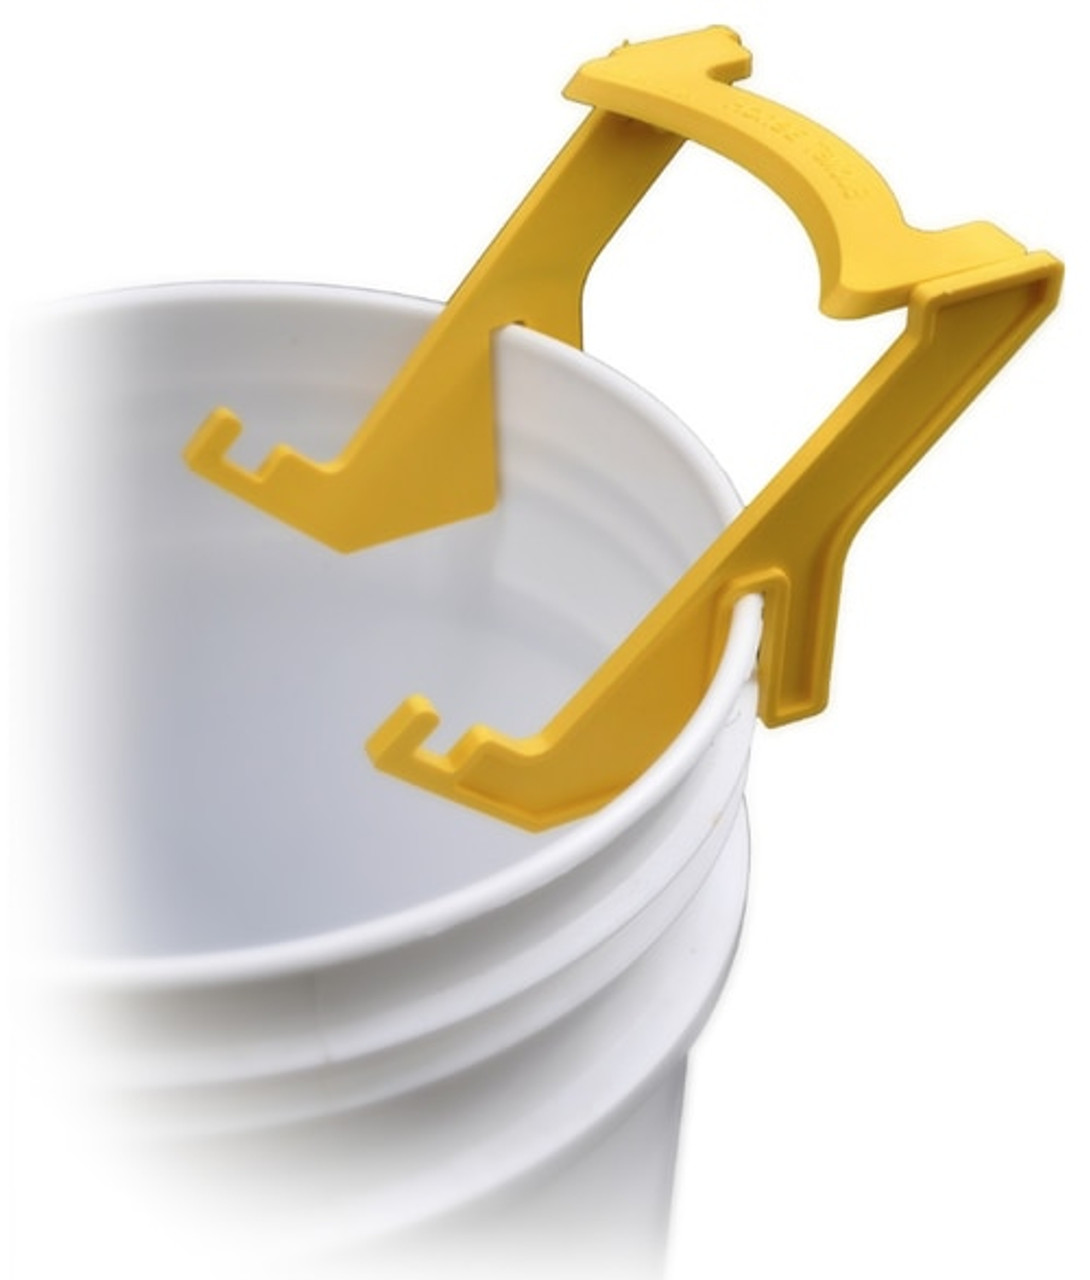 Honey Harvest Kit - Crush and Strain - With FREE Bucket Tipper